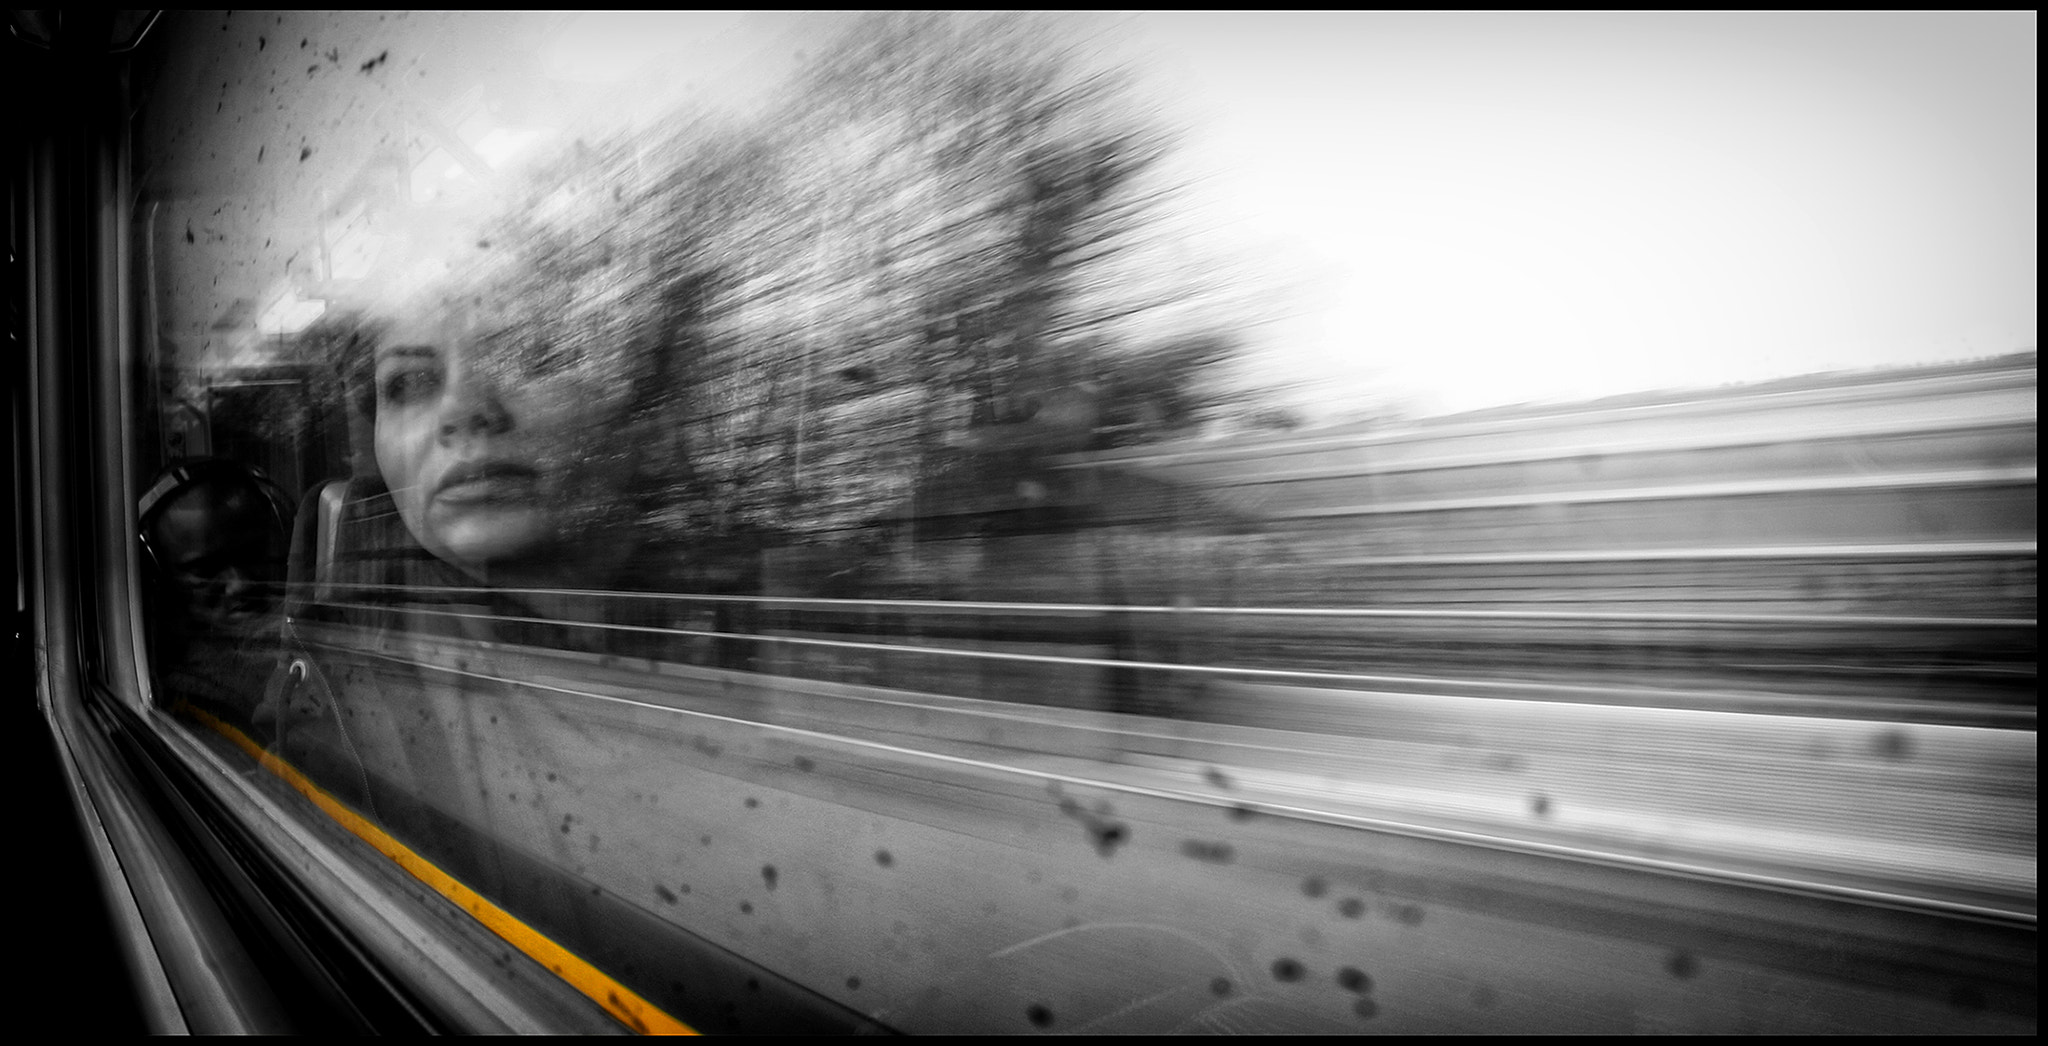 Photograph Speed of life by Sami Lane on 500px